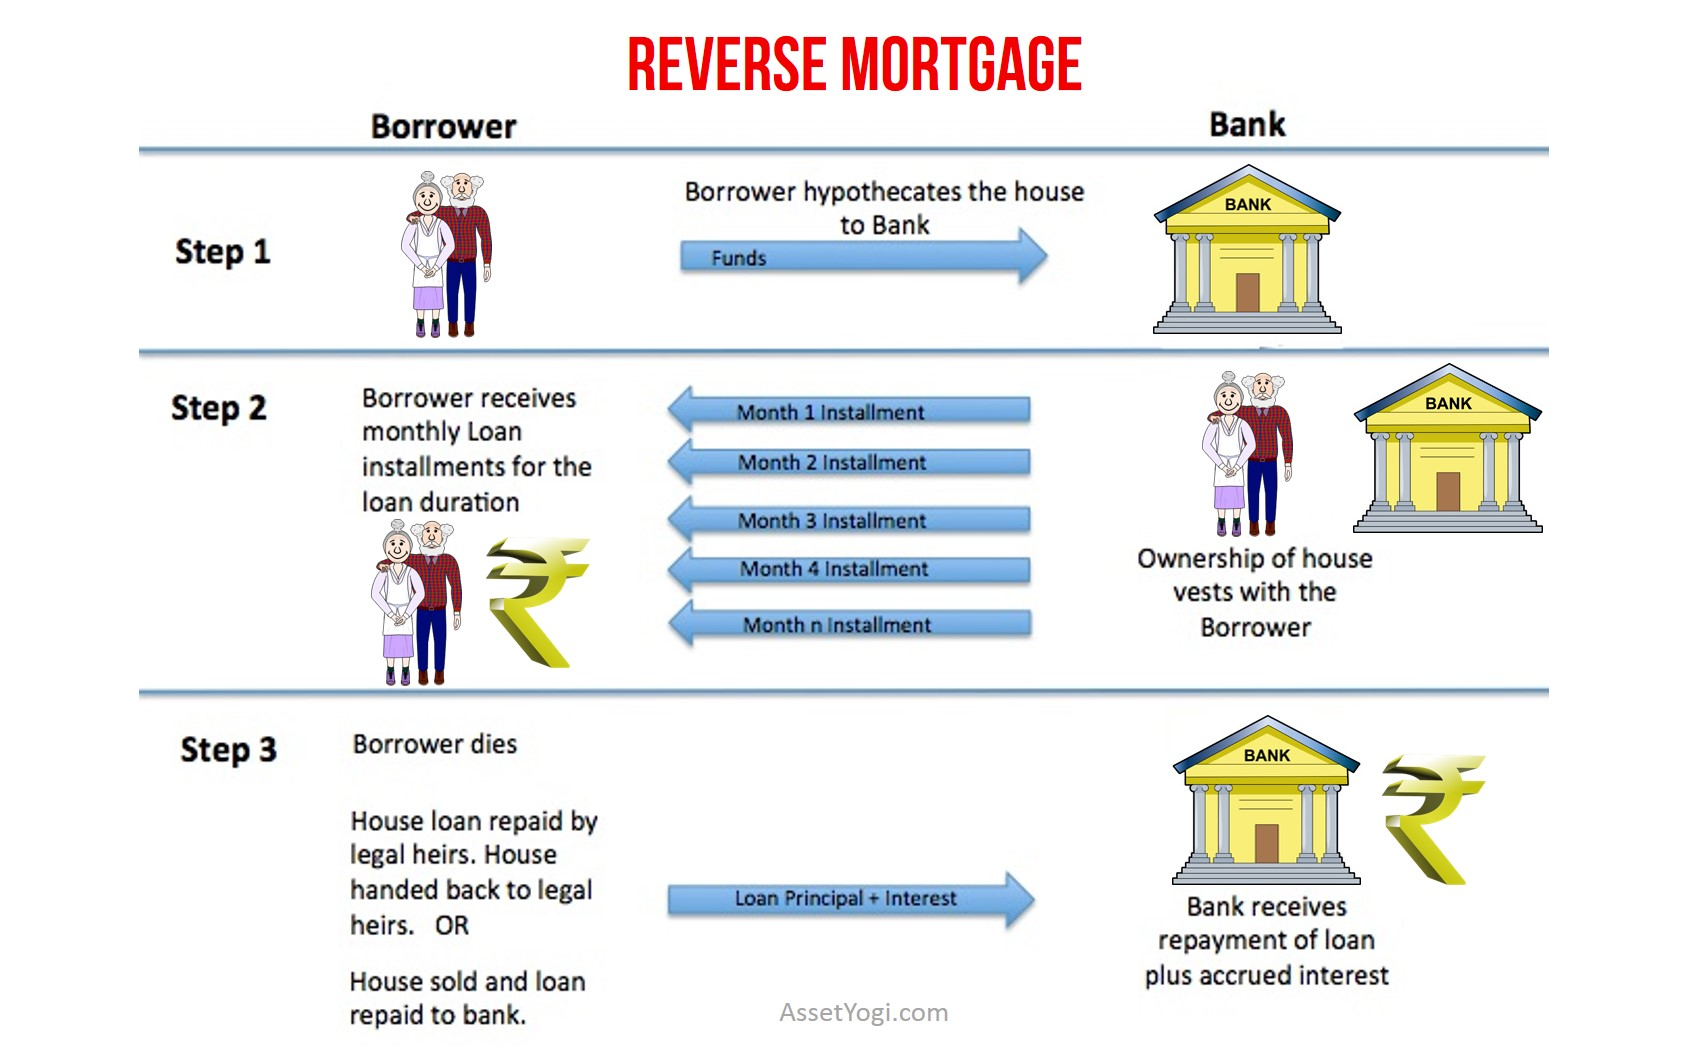 Pros And Cons Of Reverse Mortgage